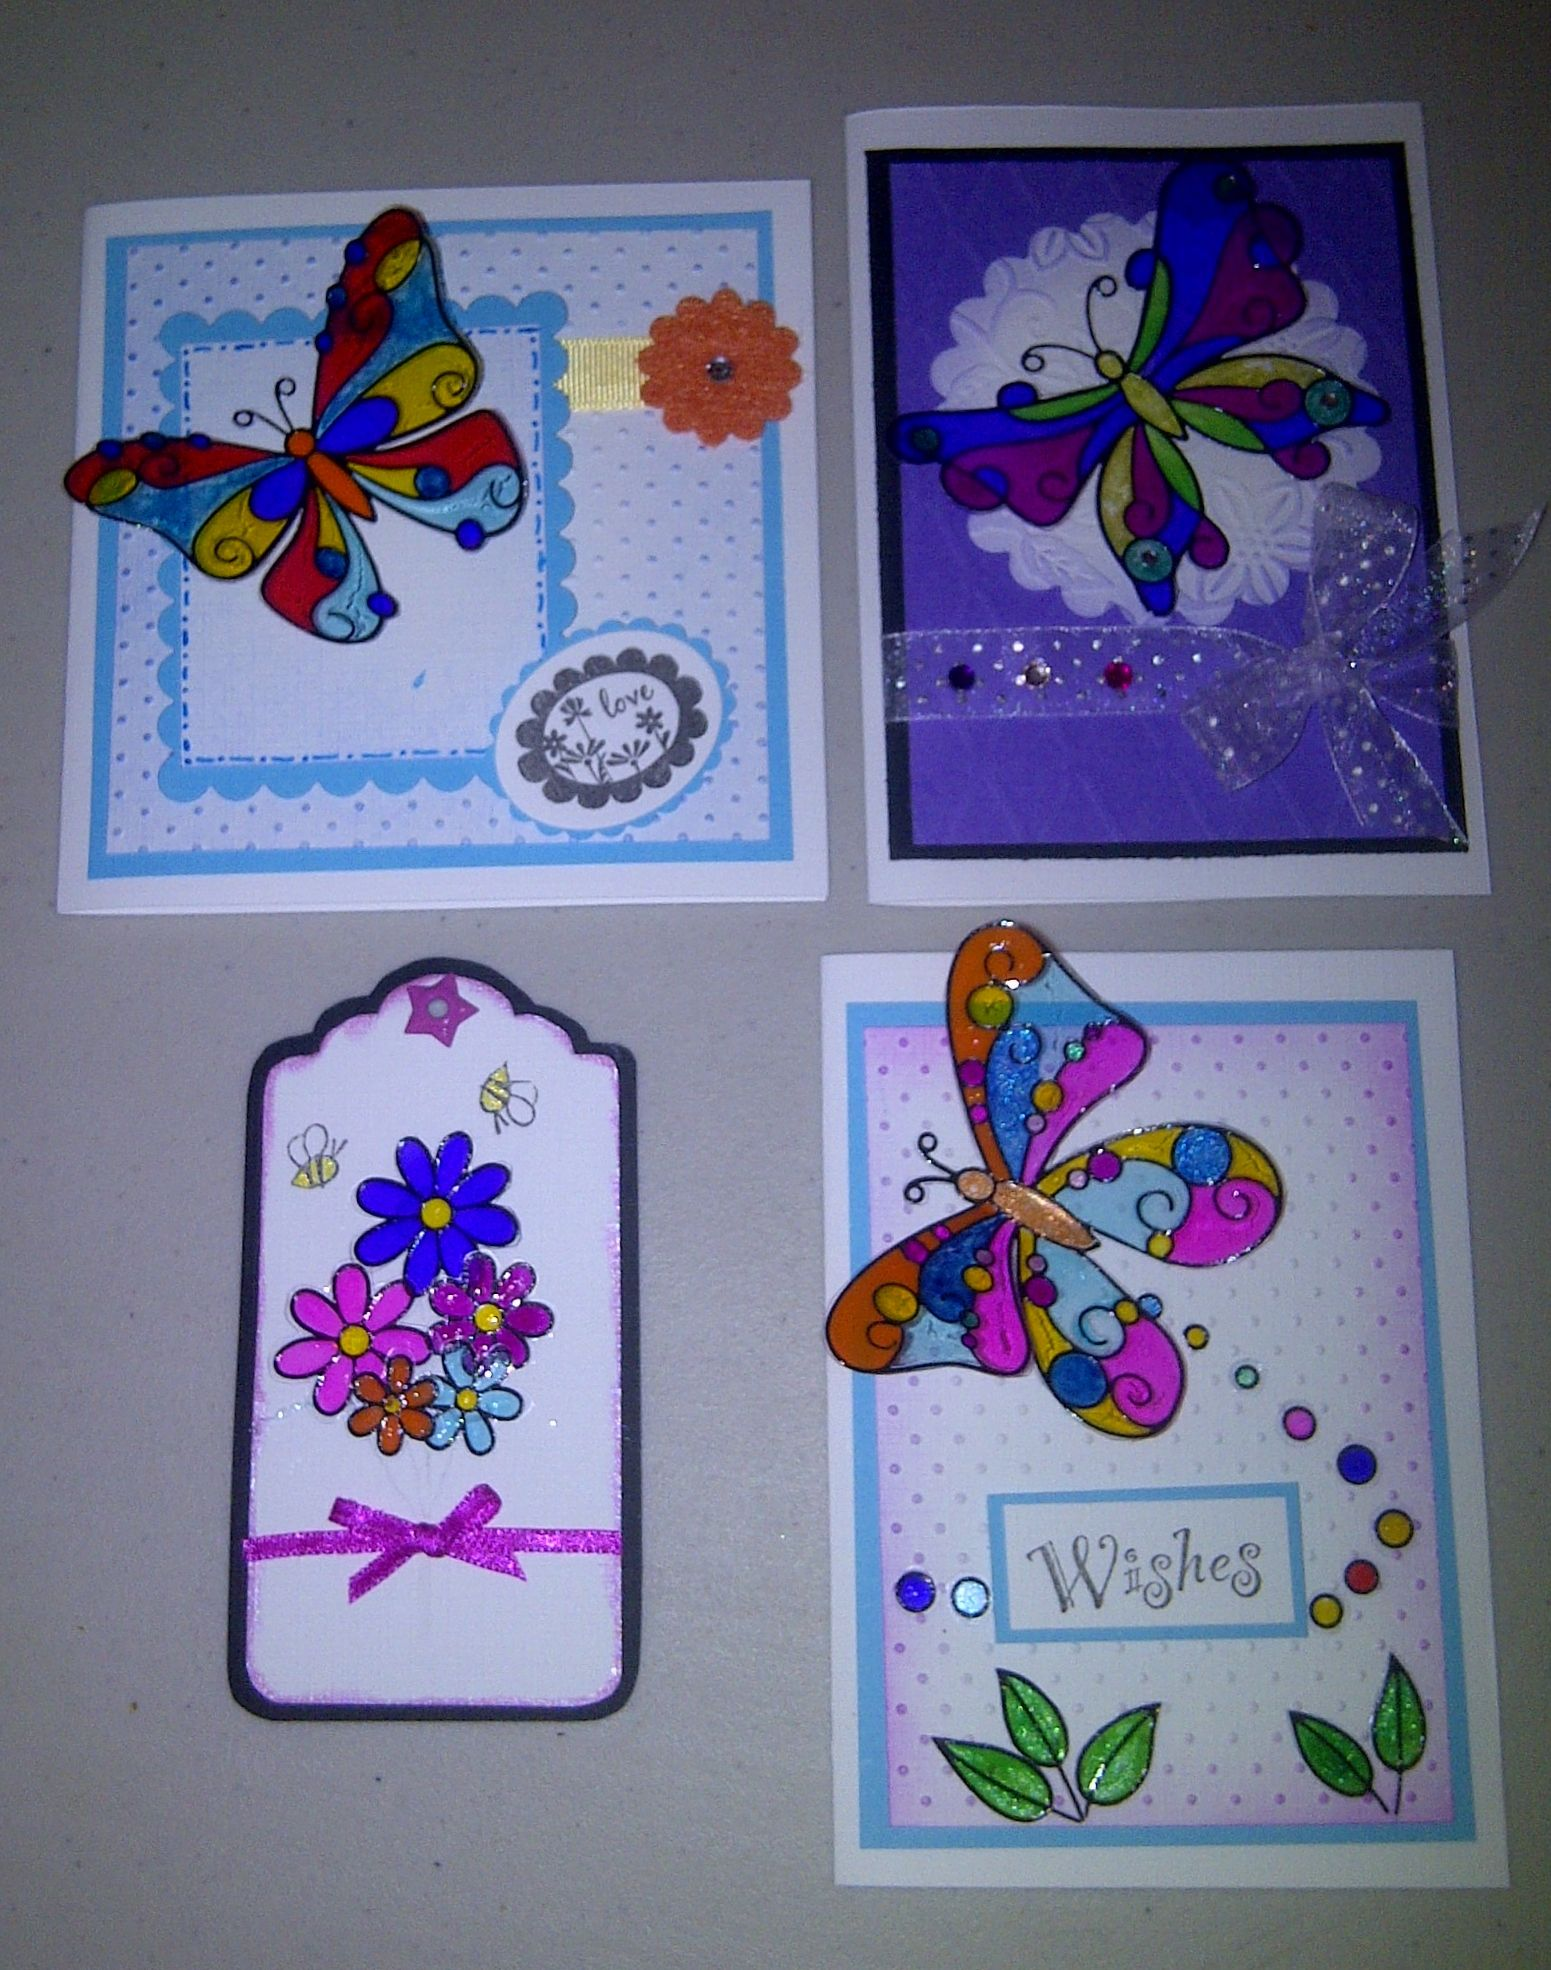 Cards tag made using acetate and glaze pens card ideas cards tag made using acetate and glaze pens jeuxipadfo Gallery